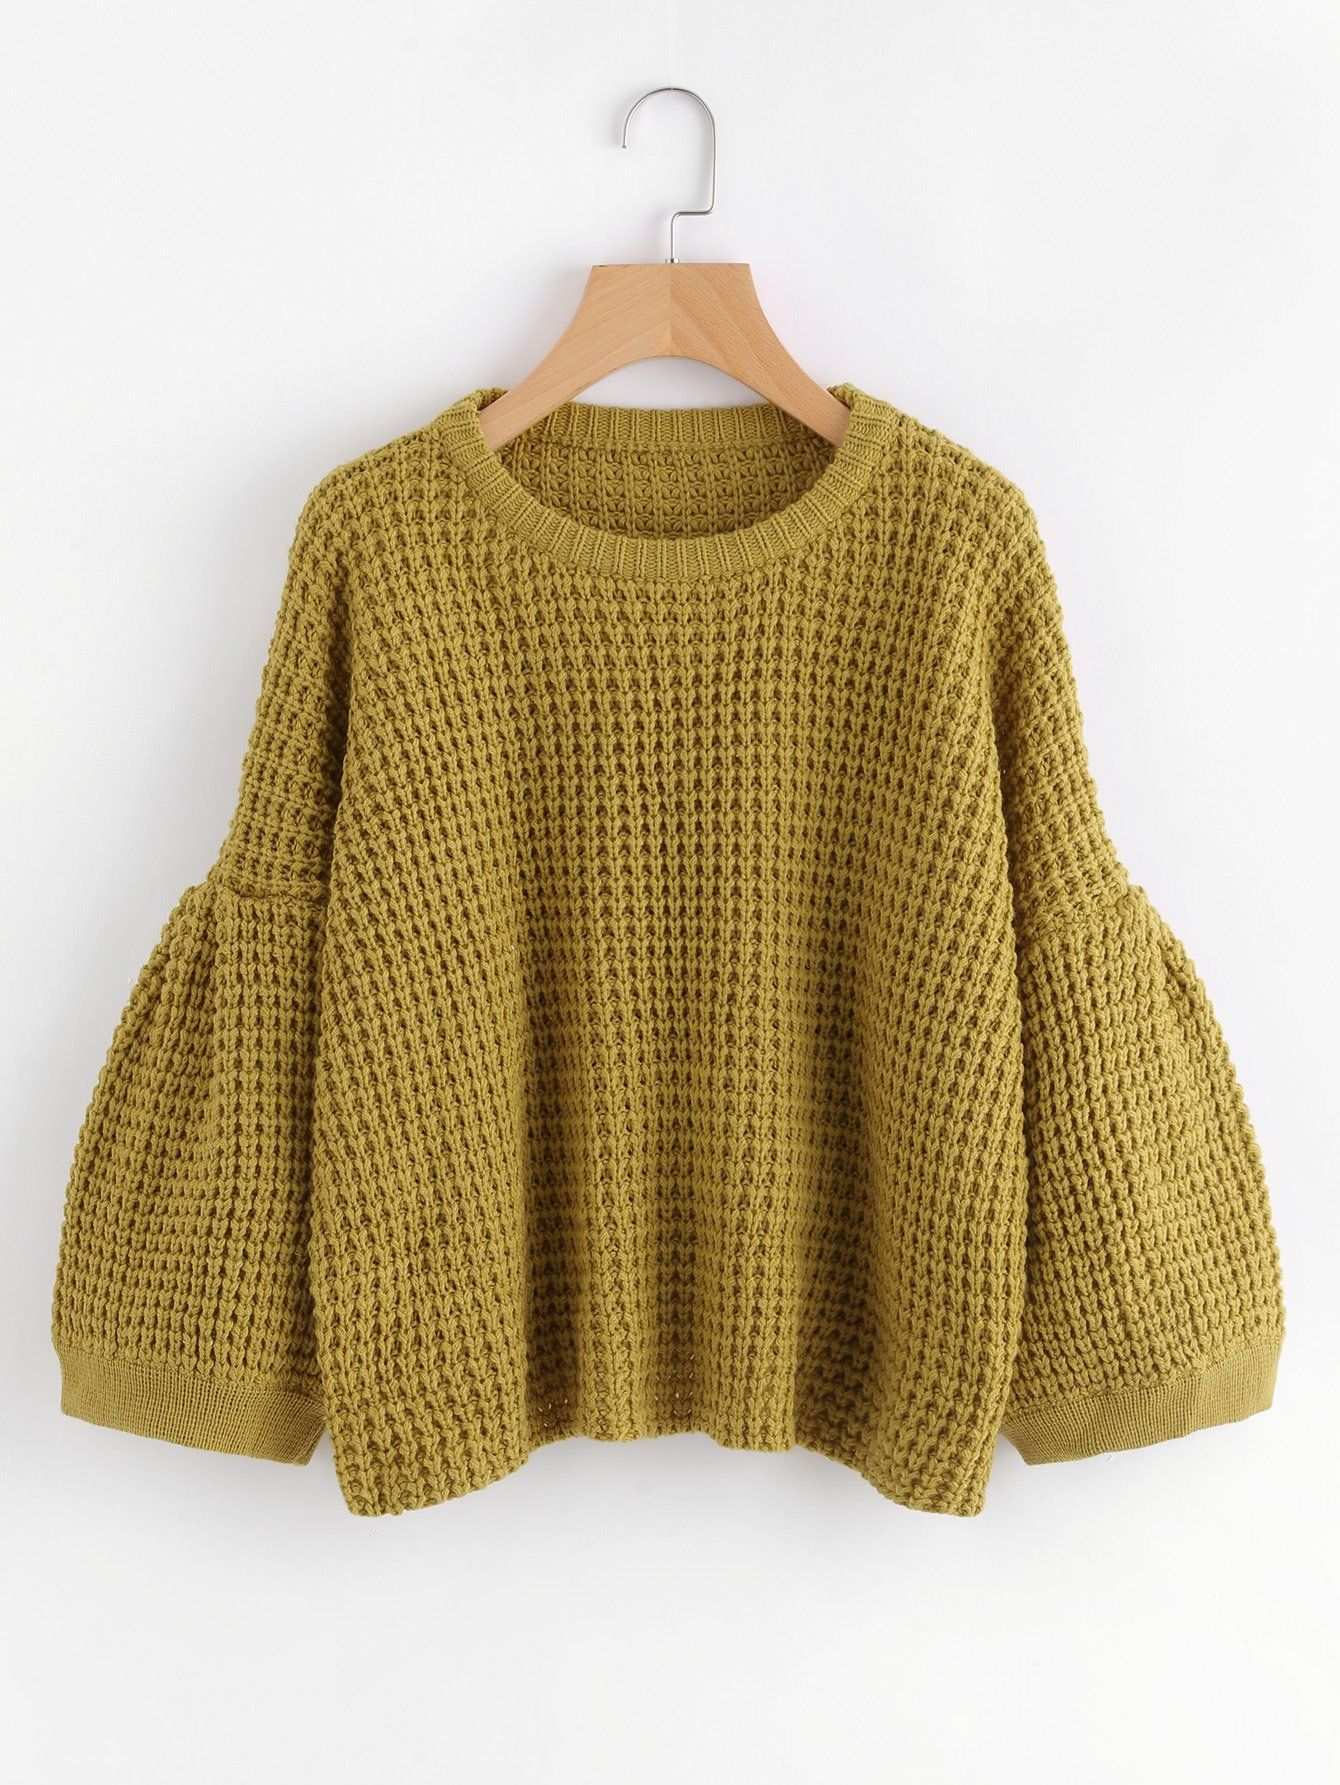 21439b0fe8328 Material: 100% Acrylic Color: Mustard Pattern Type: Plain Neckline: Round  Neck Style: Casual, Cute Types: Oversized Items: Pullovers Sleeve Length:  Three ...